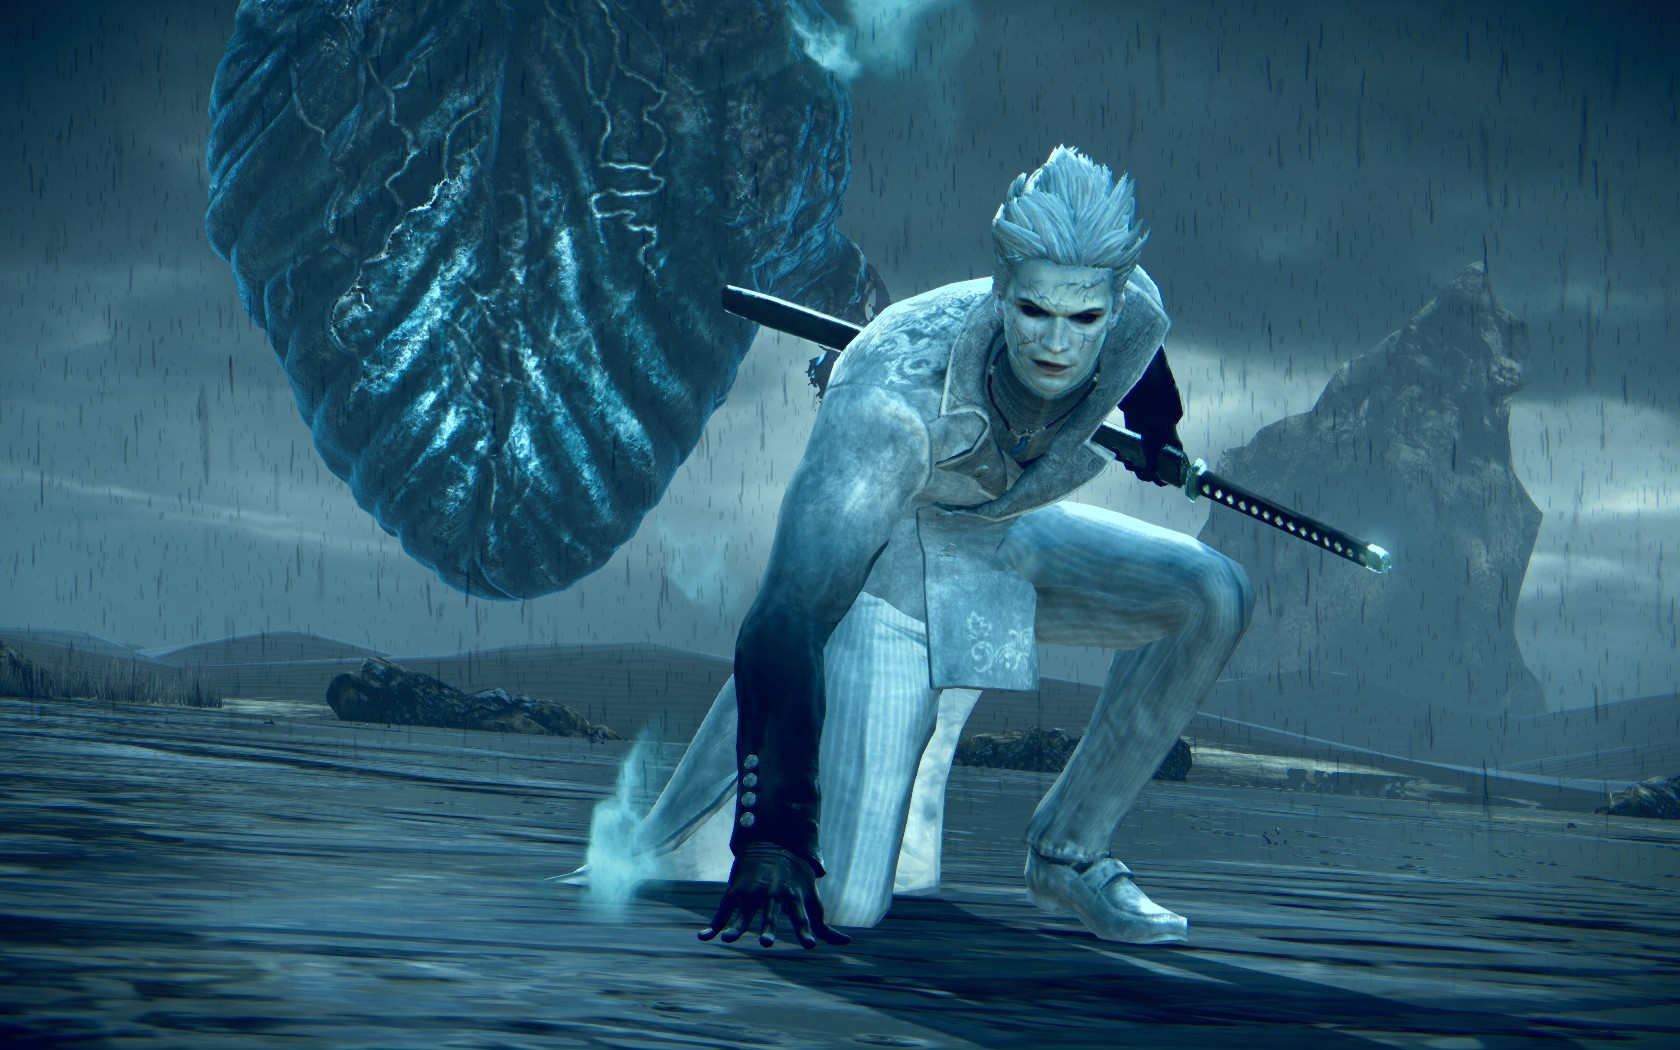 Image vergil hollowg devil may cry wiki fandom powered by vergil hollowg voltagebd Gallery